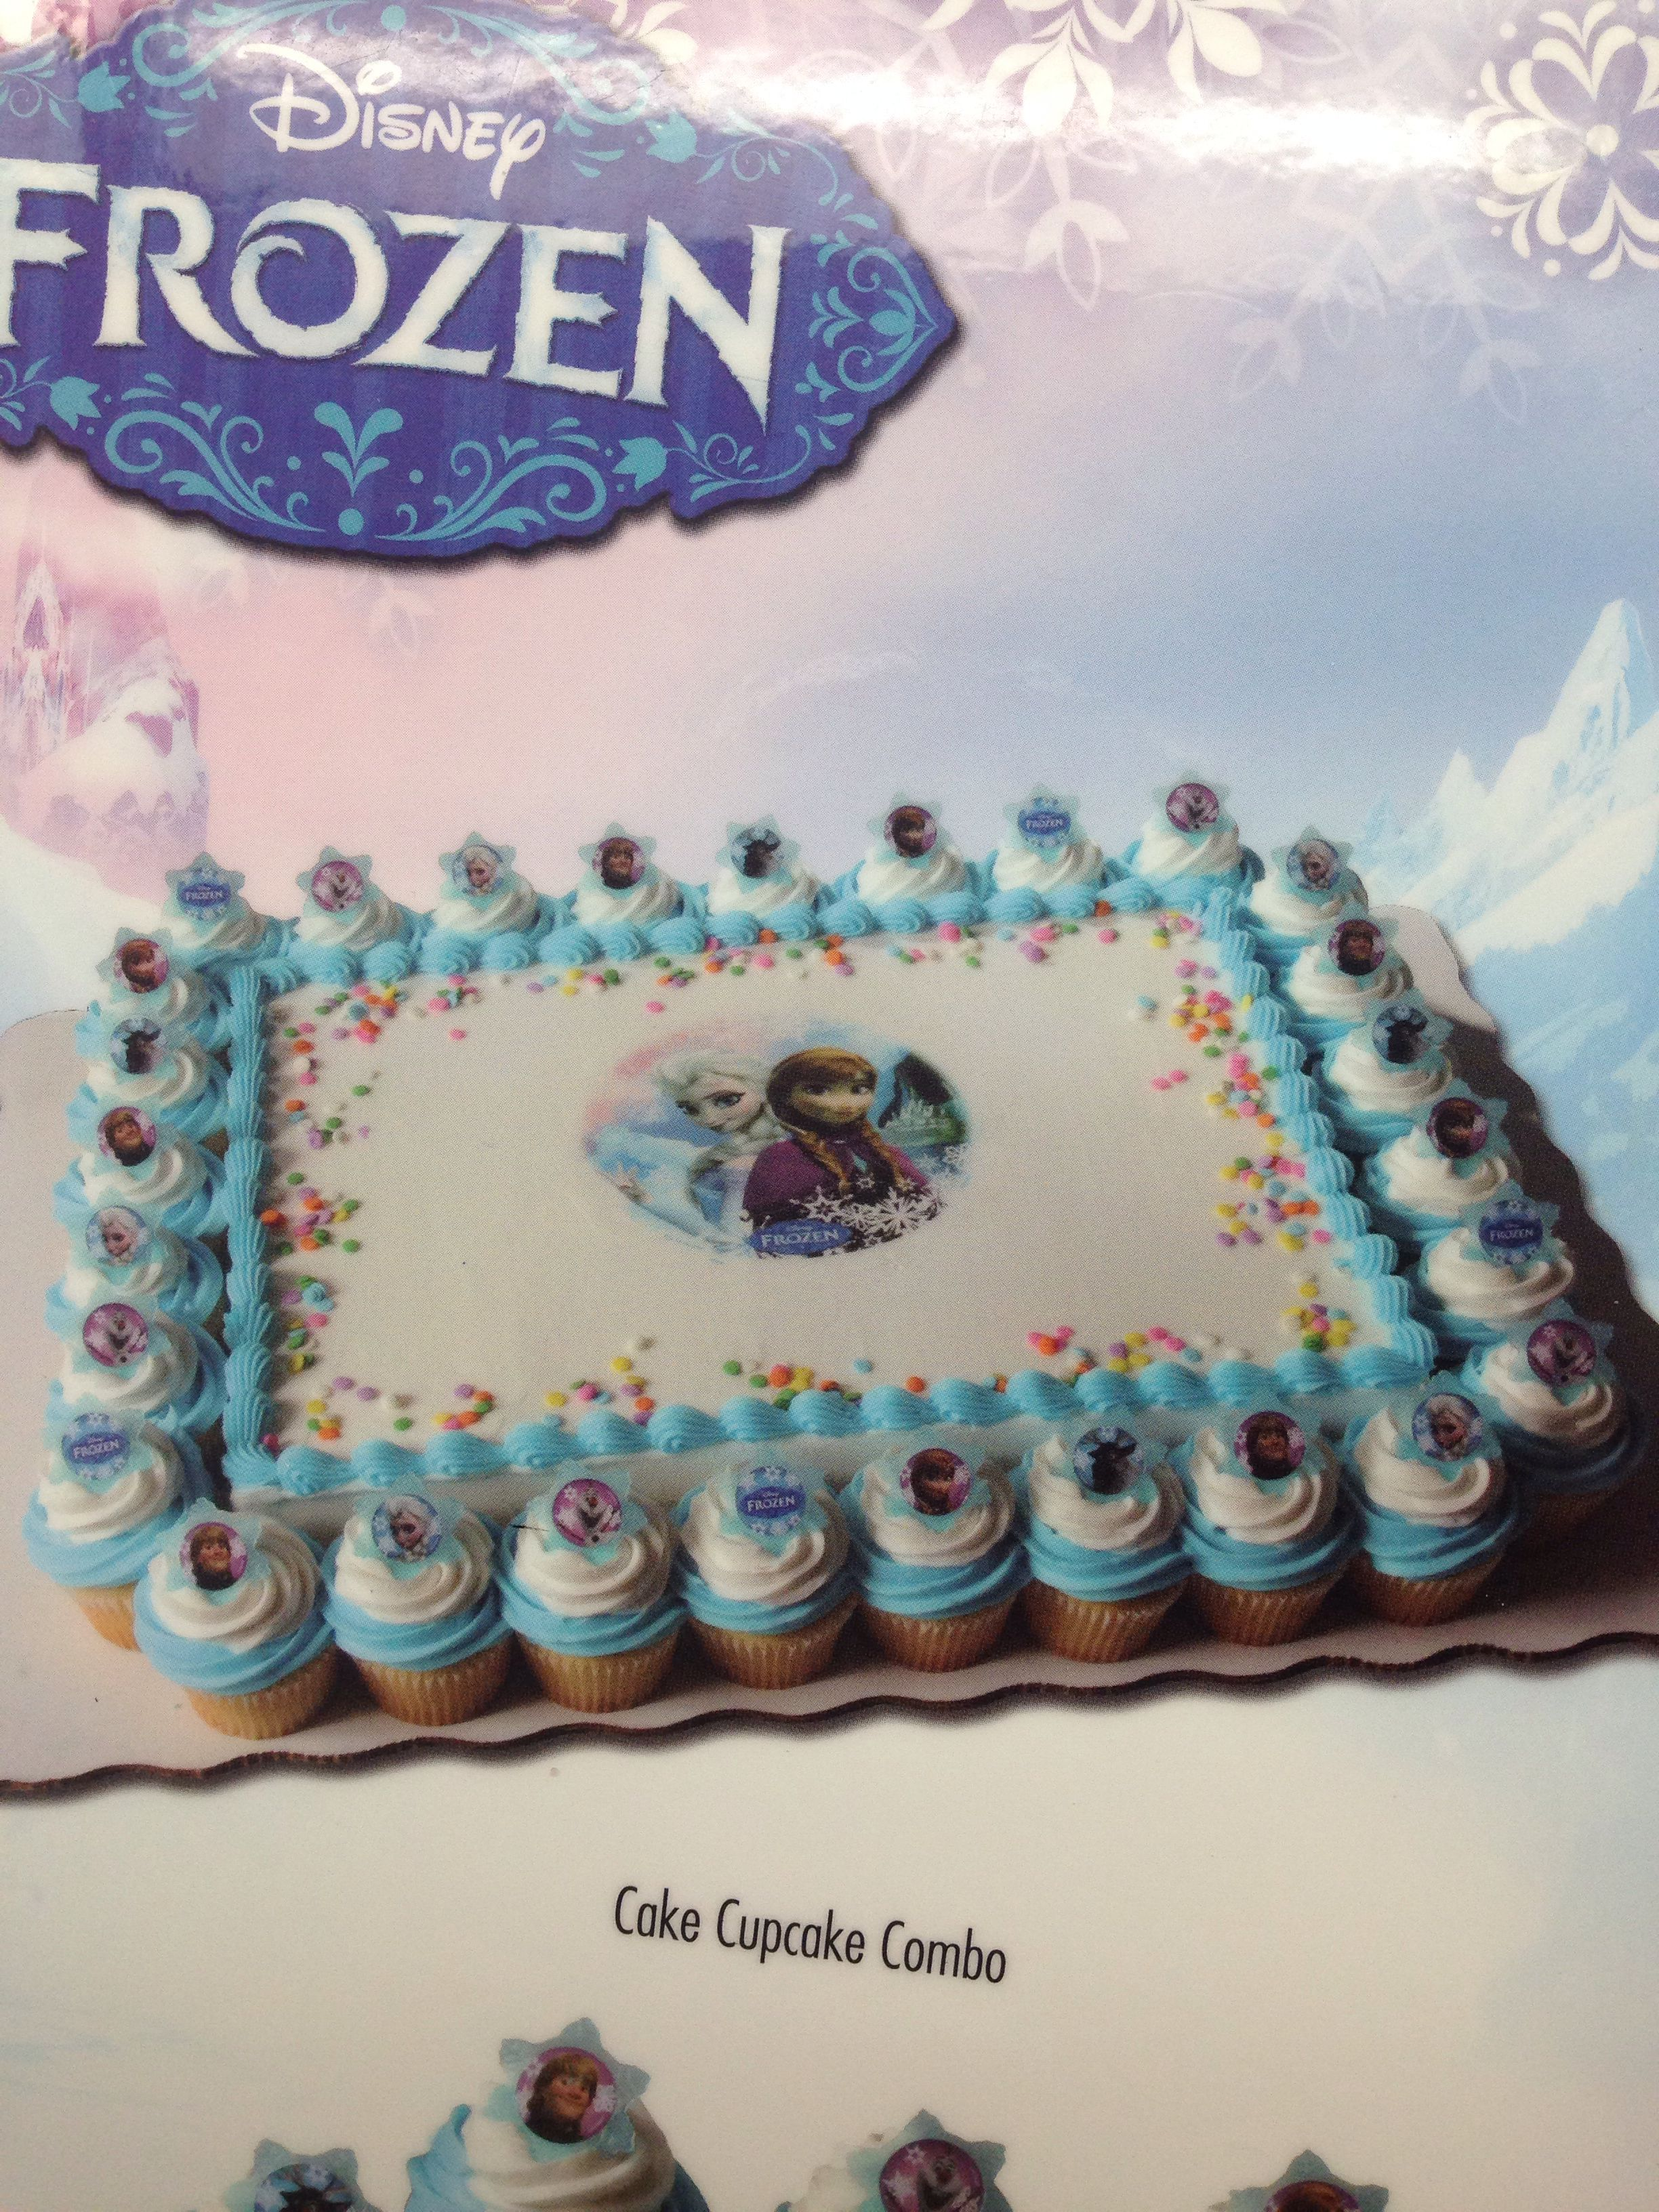 Marvelous Frozen Sams Club Birthday Cake Cupcake Combo Cake Designs Funny Birthday Cards Online Alyptdamsfinfo